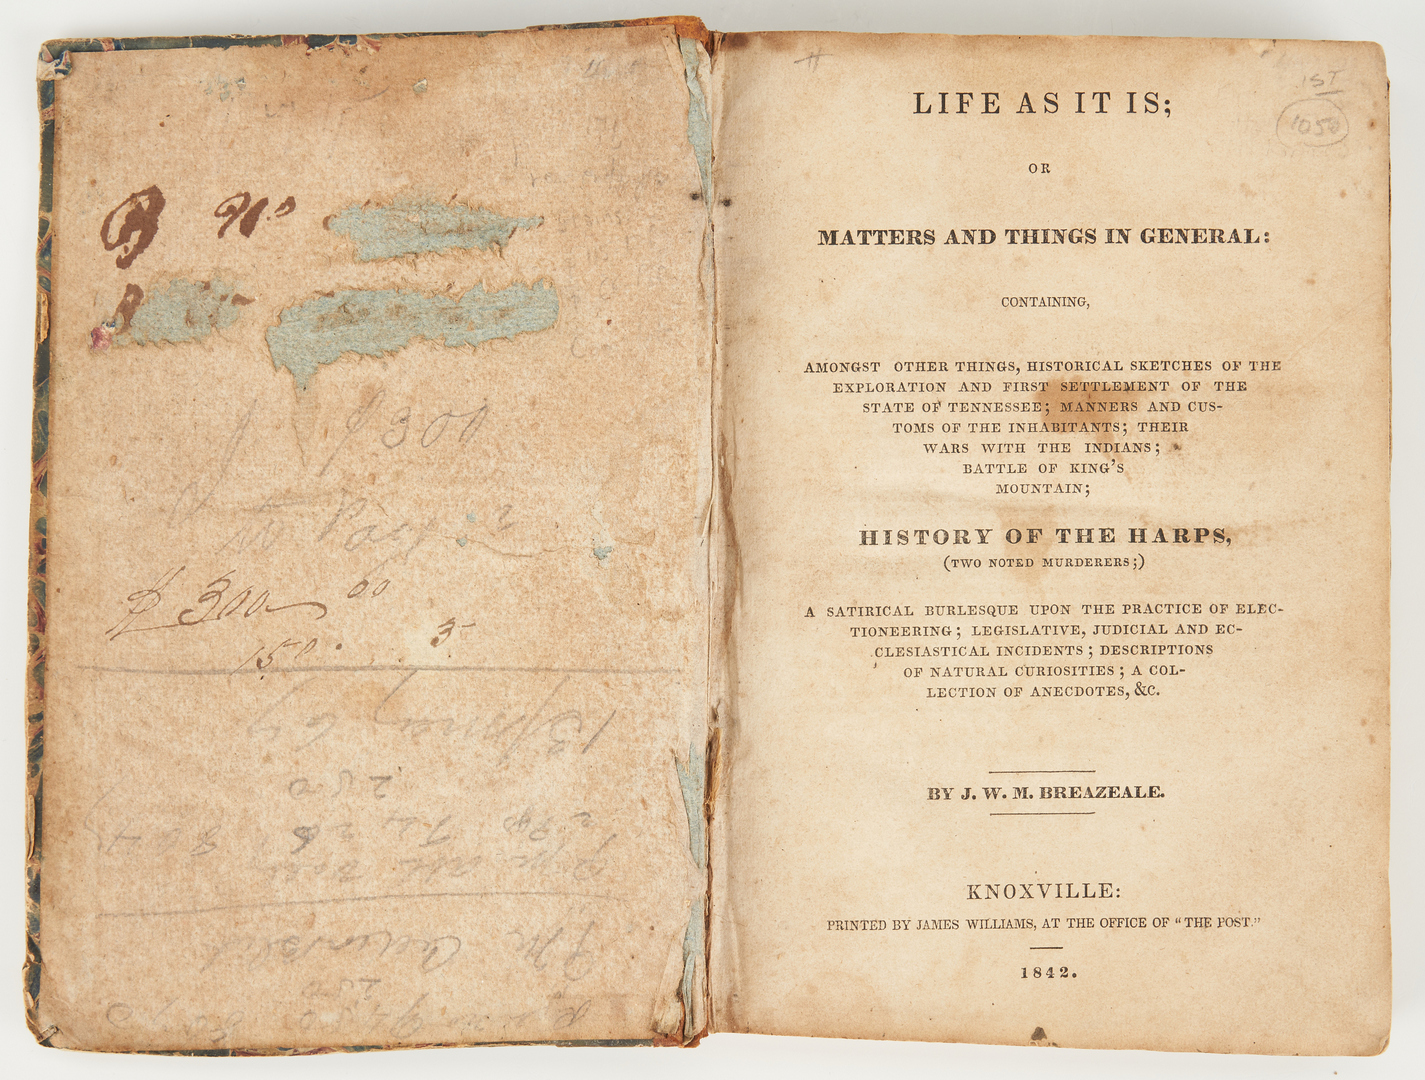 Lot 630: Two (2) J.W.M. Breazeale, Life As It Is, 1842